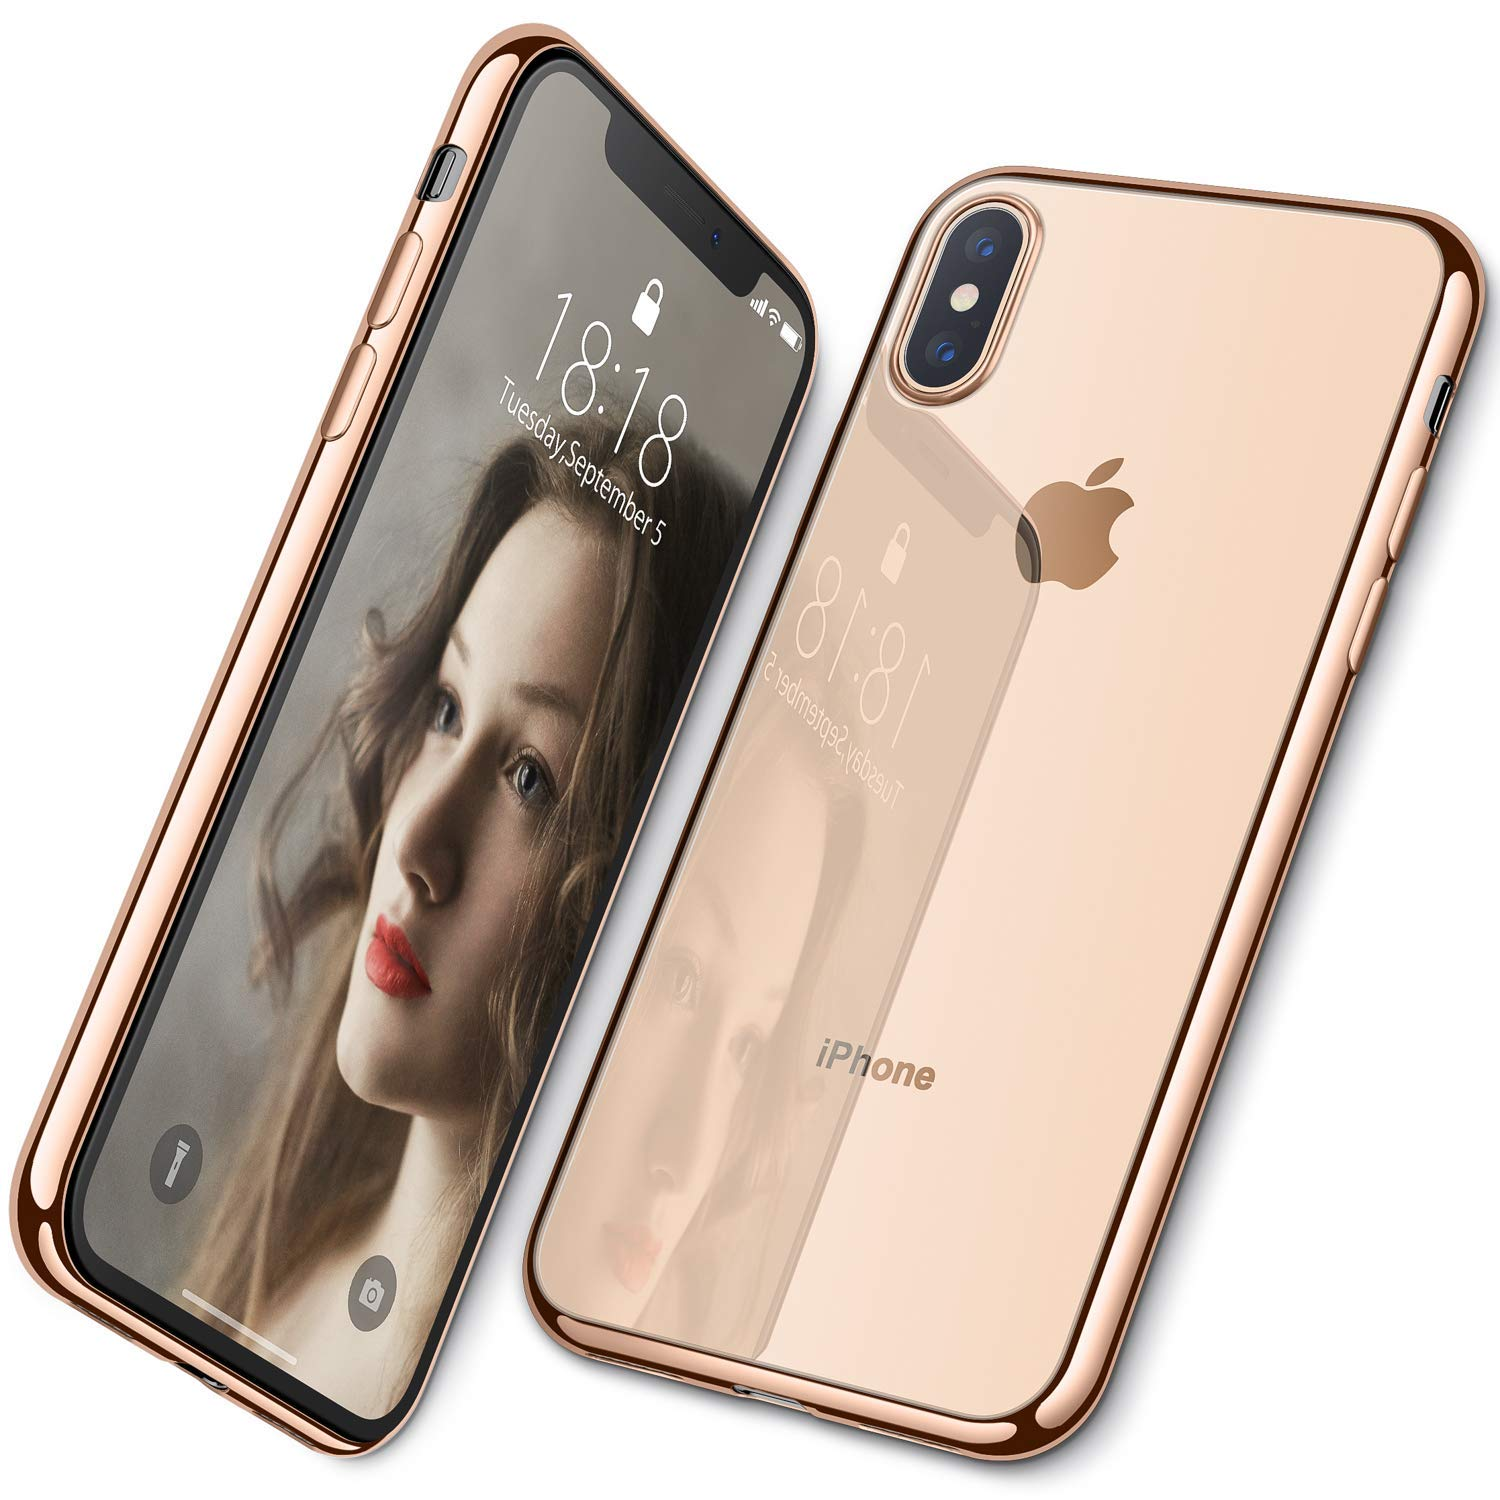 official photos 38309 b44ef For iPhone XS Max XS XR Case,WEFOR Ultra Slim Thin Clear Soft Premium  Flexible Chrome Bumper Transparent TPU Back Plate Cover